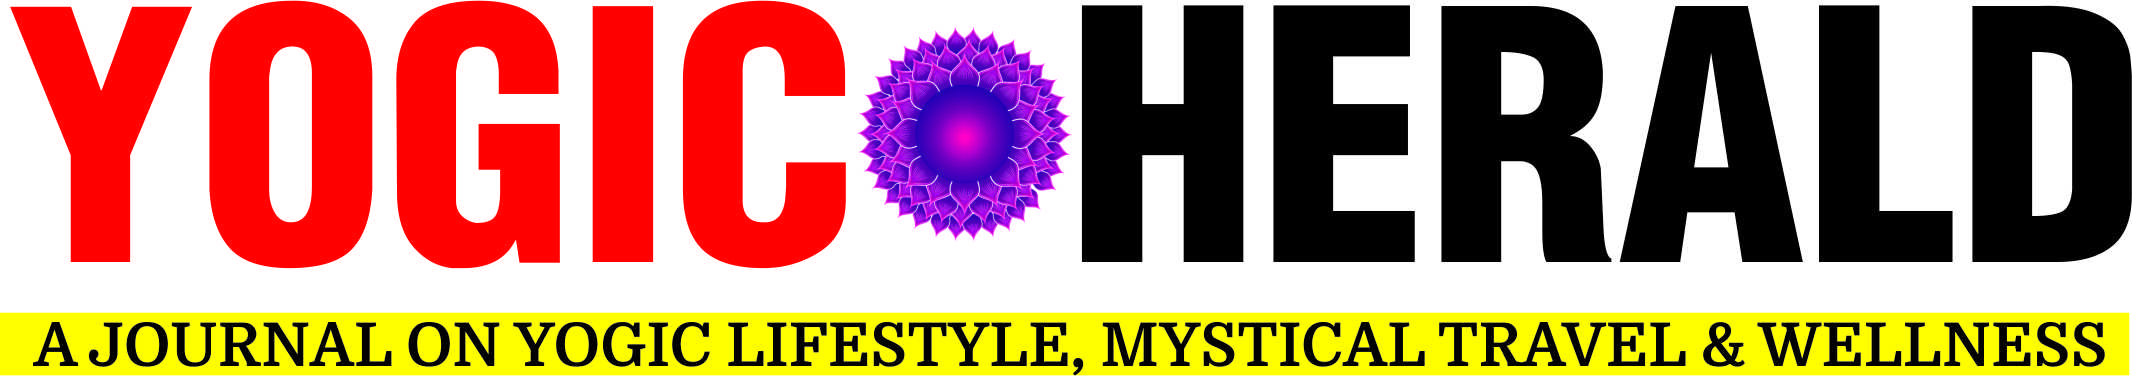 Yogic Herald - A Journal on Yogic Lifestyle, Mystical Travel & Wellness